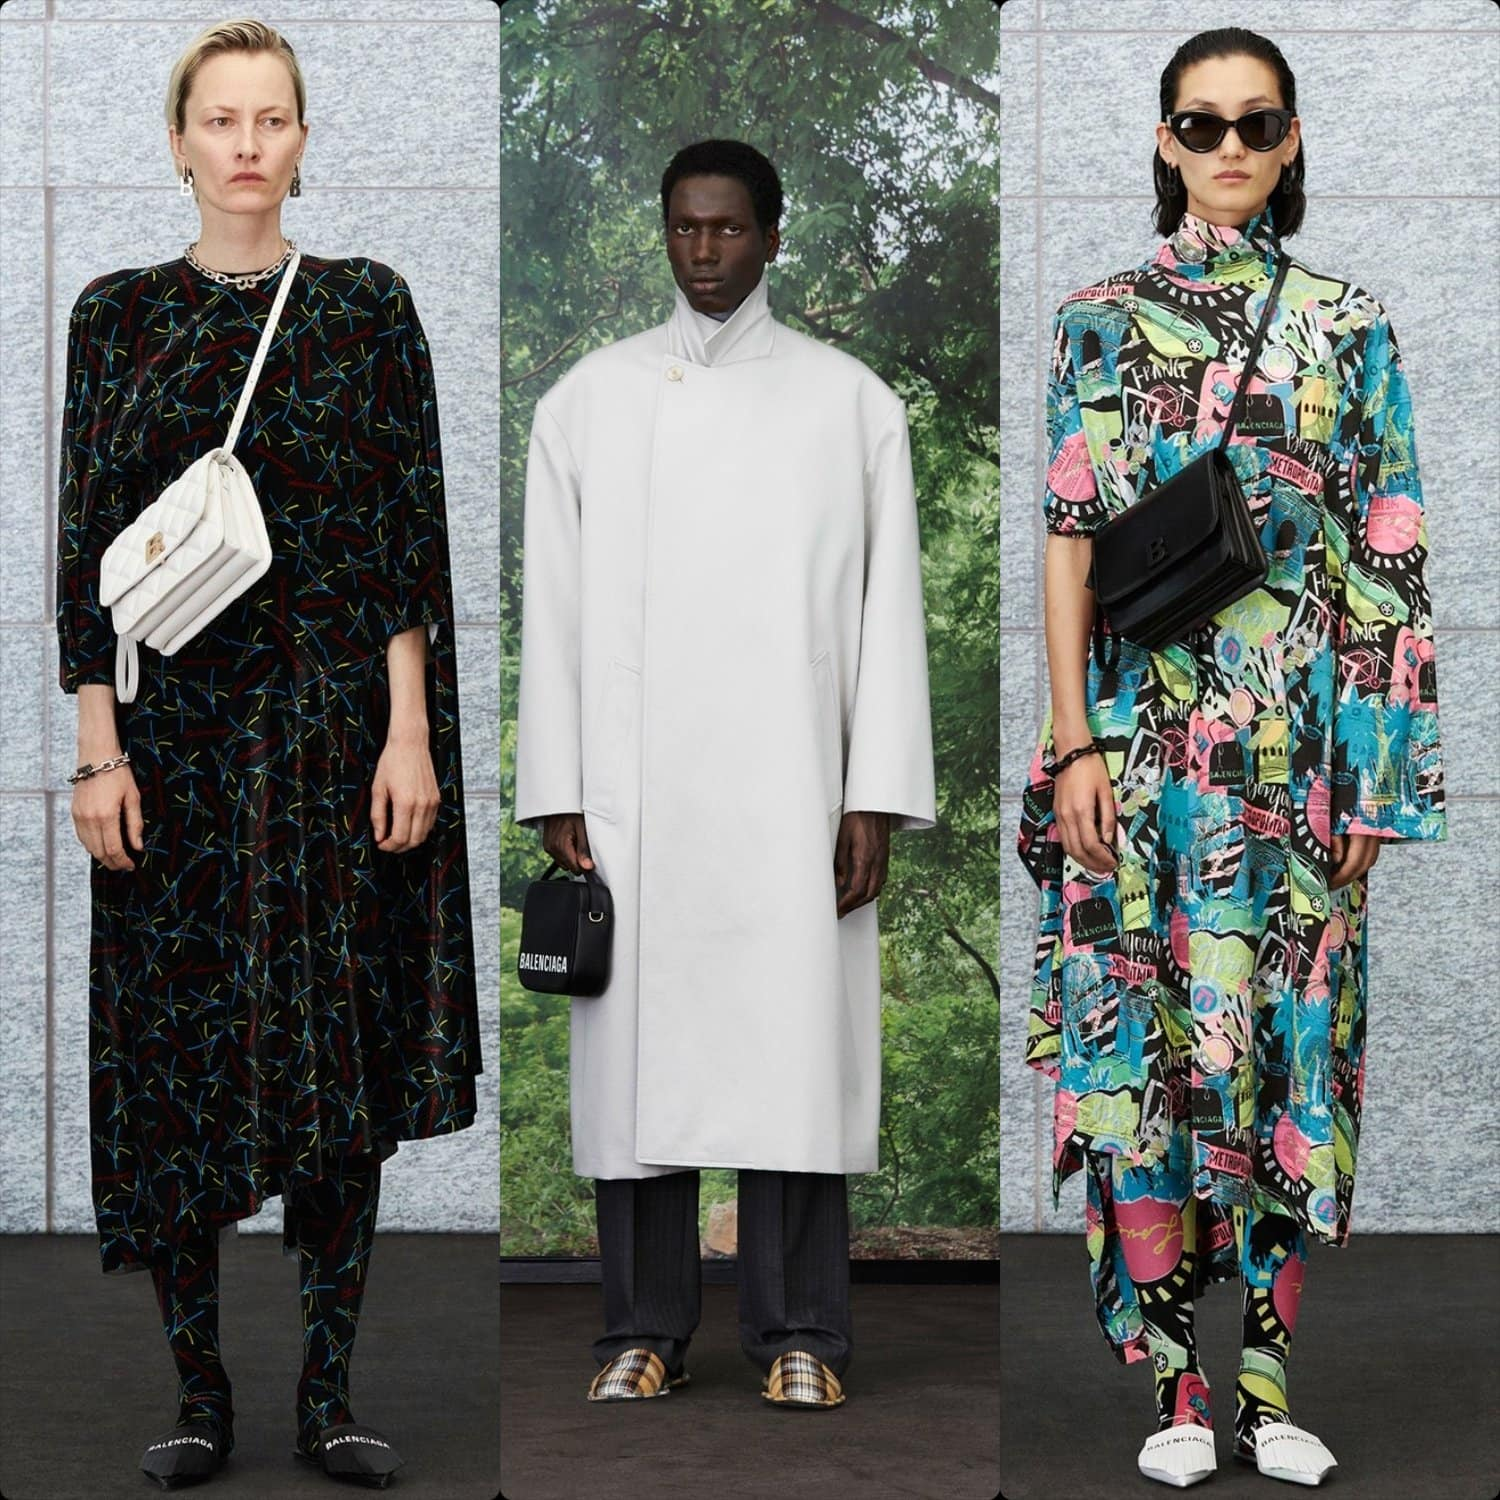 Balenciaga Cruise 2020 Resort Paris. RUNWAY MAGAZINE ® Collections. RUNWAY NOW / RUNWAY NEW